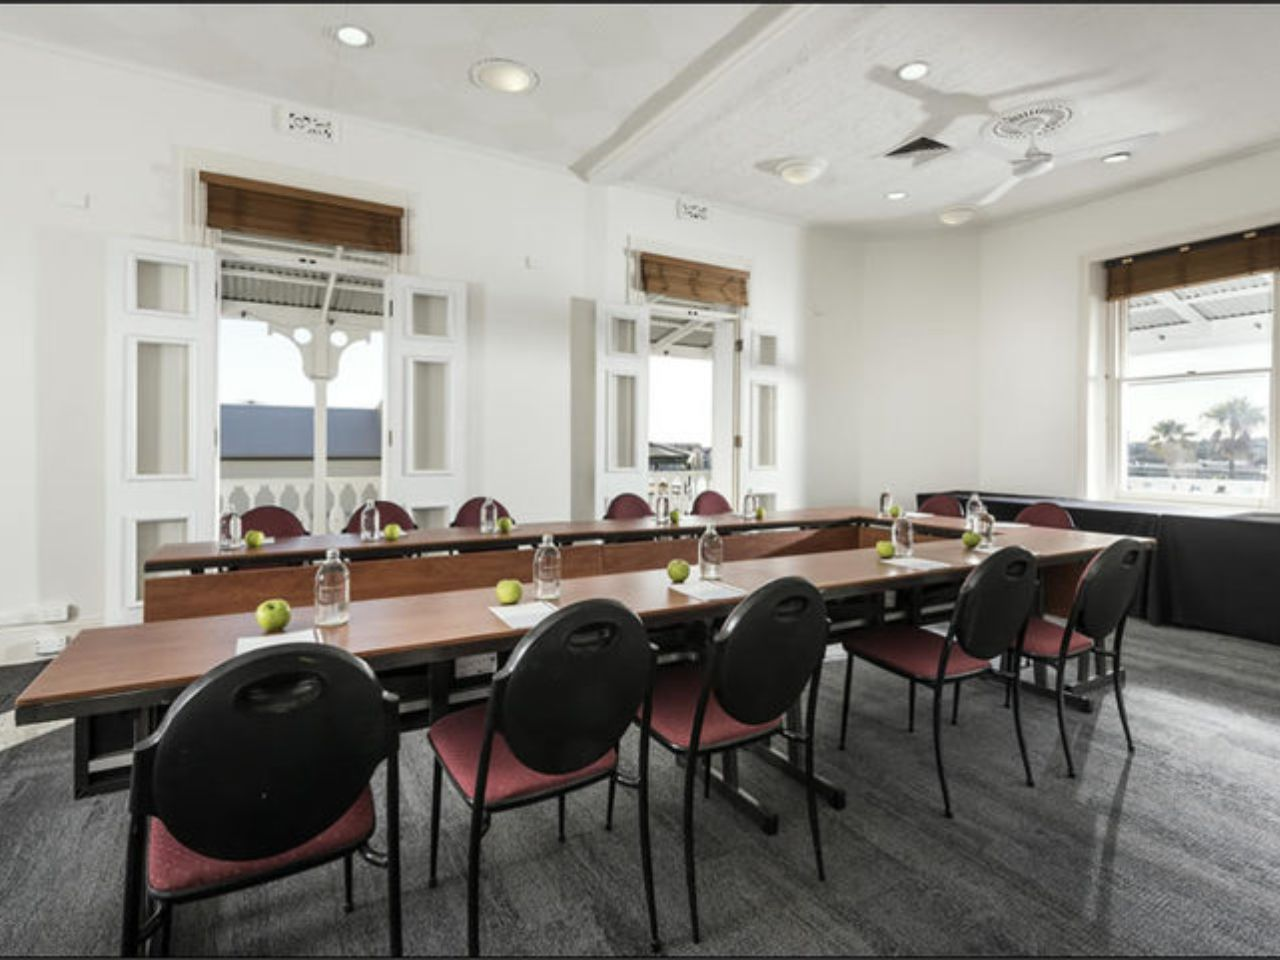 Small function room U-shaped table set up